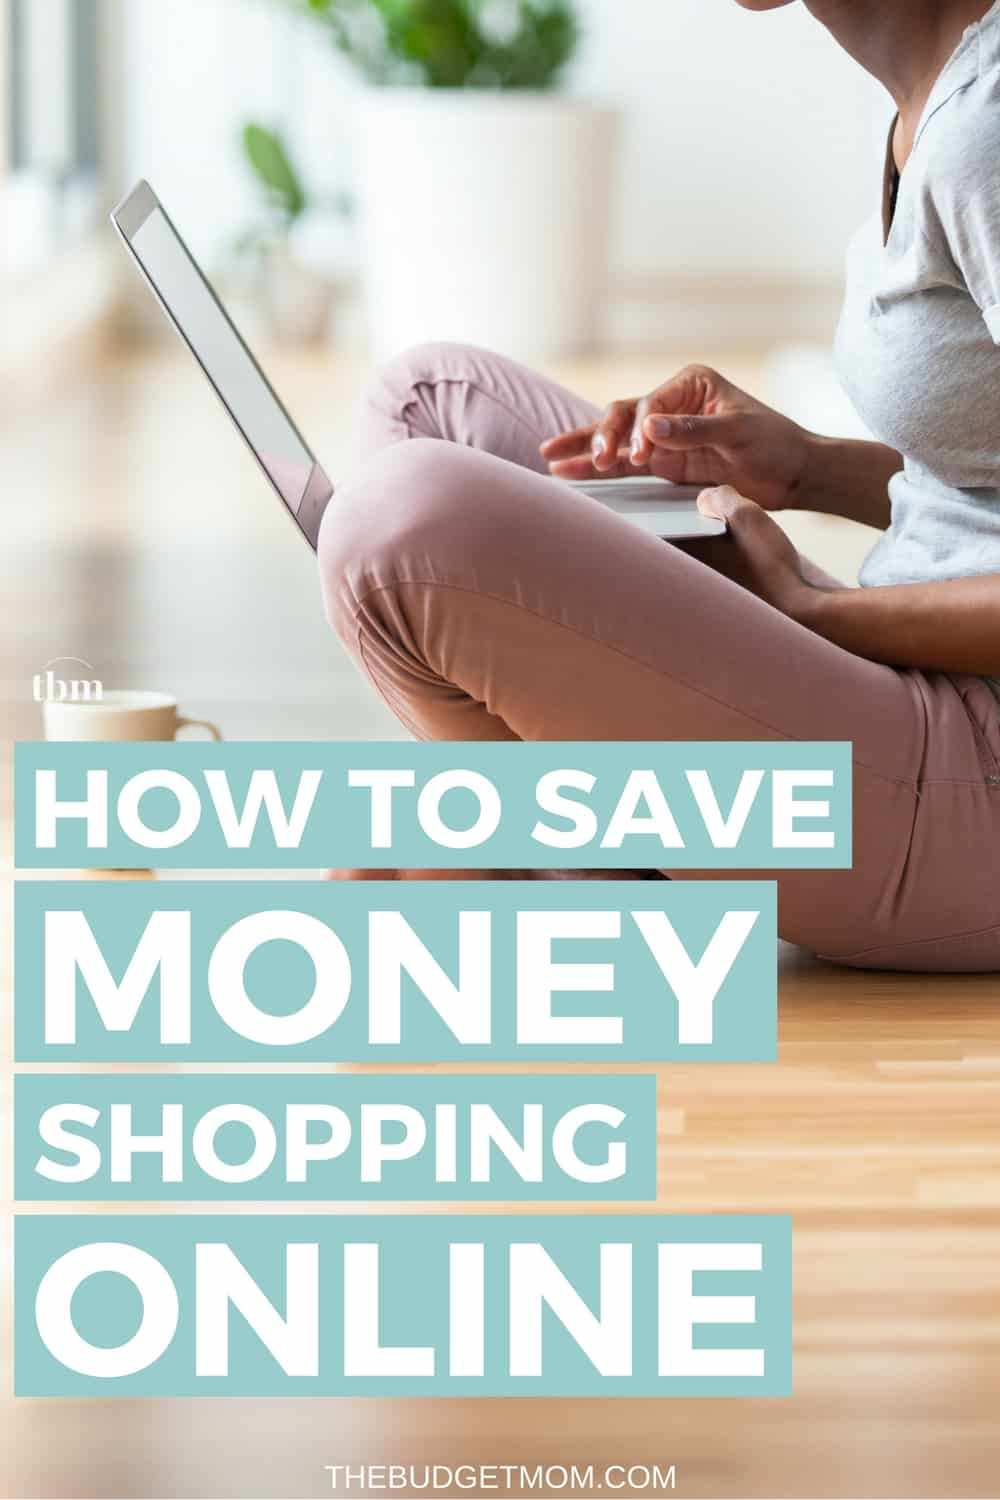 More people than ever are shopping online, but a lot of them are missing out on simple savings opportunities. This article will give you a variety of ways to save money while shopping online.